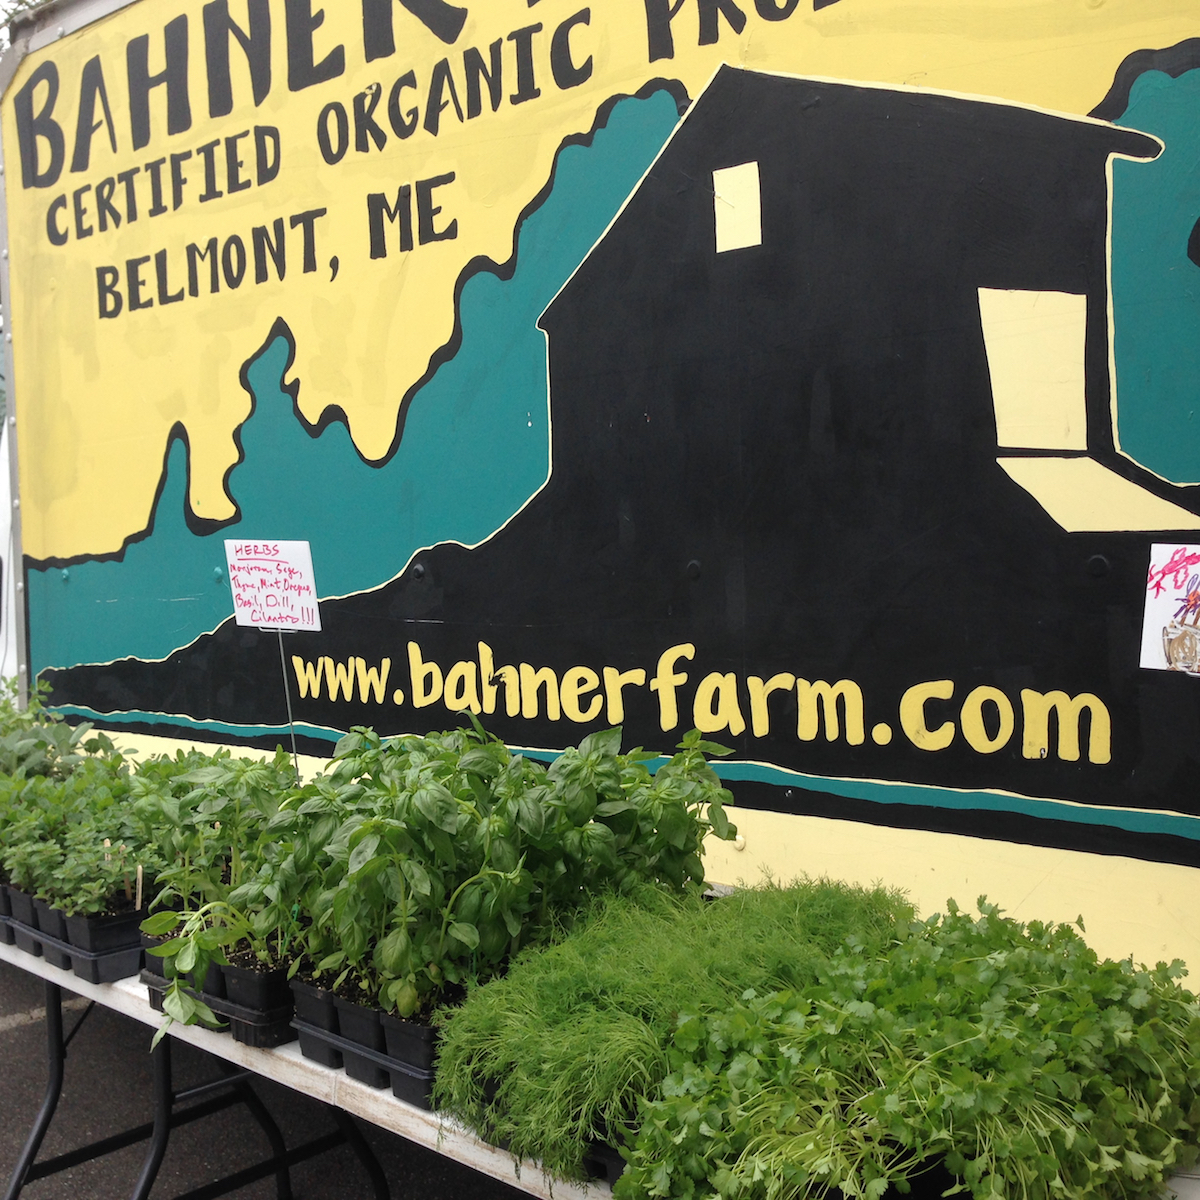 Farmers Market Finds: herb plants cilantro and basil and more